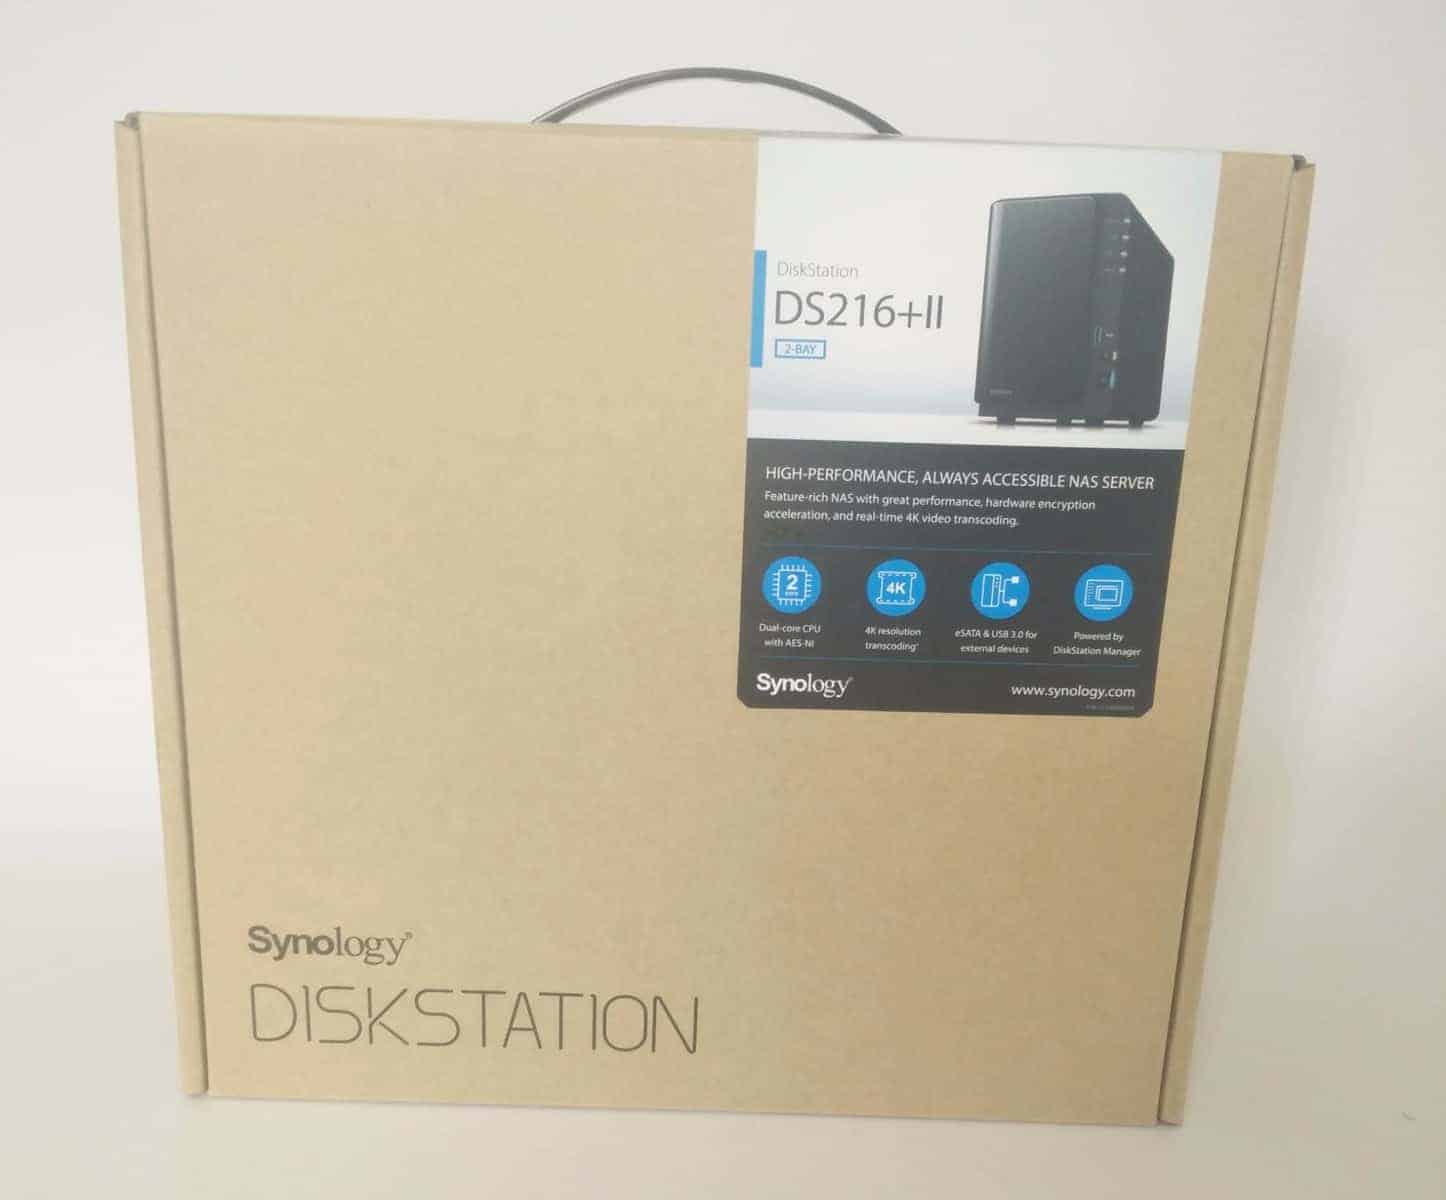 Synology DS216+II 2 Bay NAS Review - The Streaming Blog